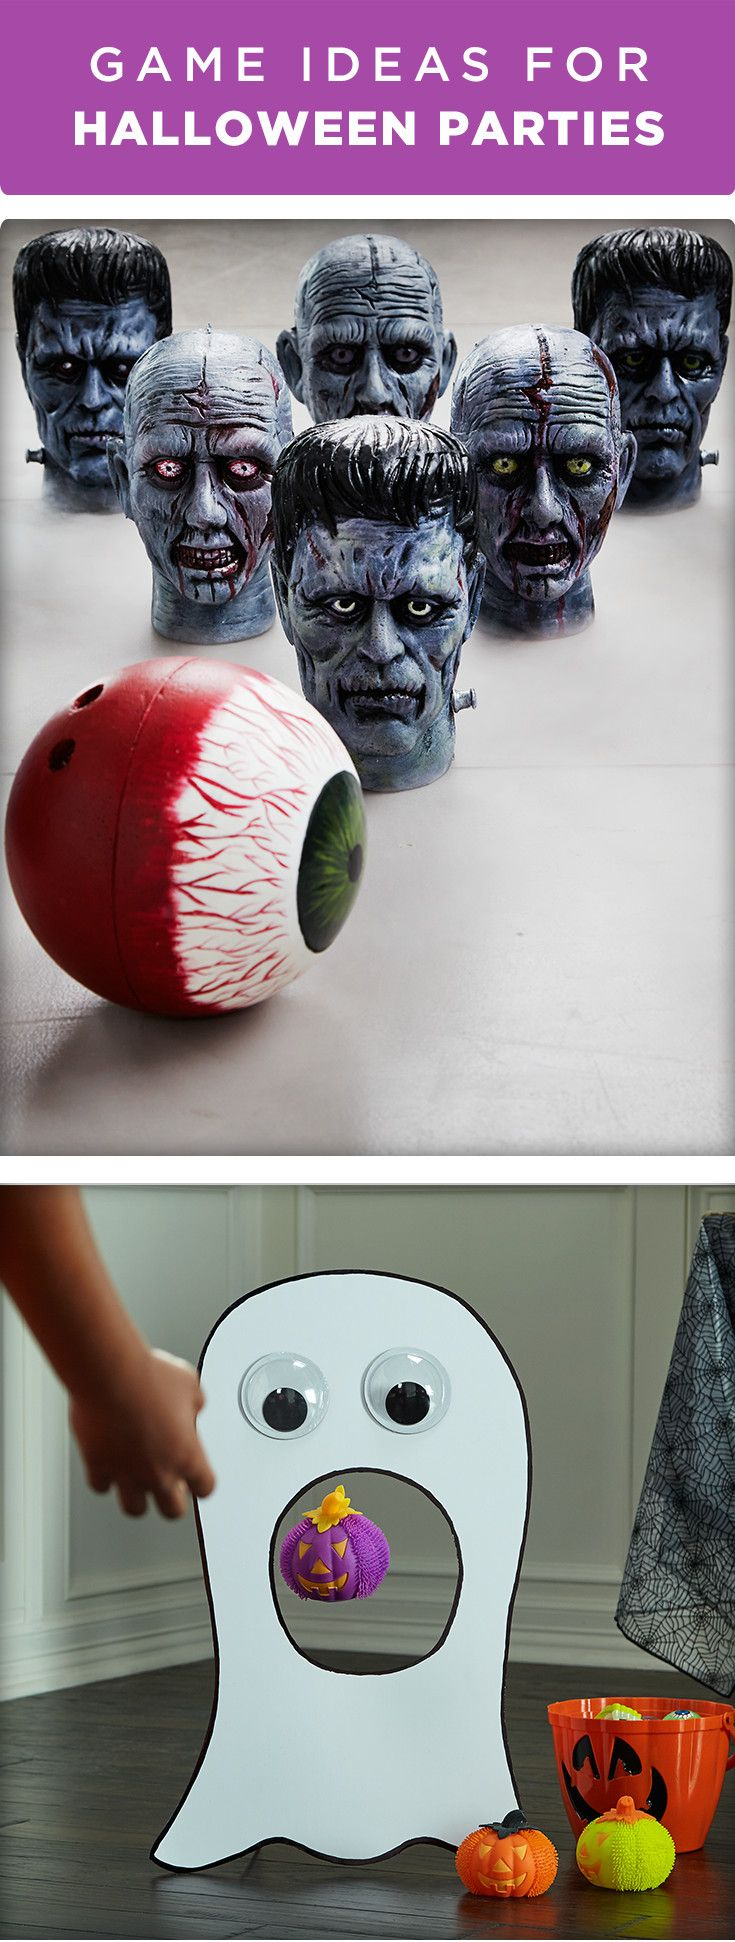 Need some fun game ideas for your Halloween party? How about ...